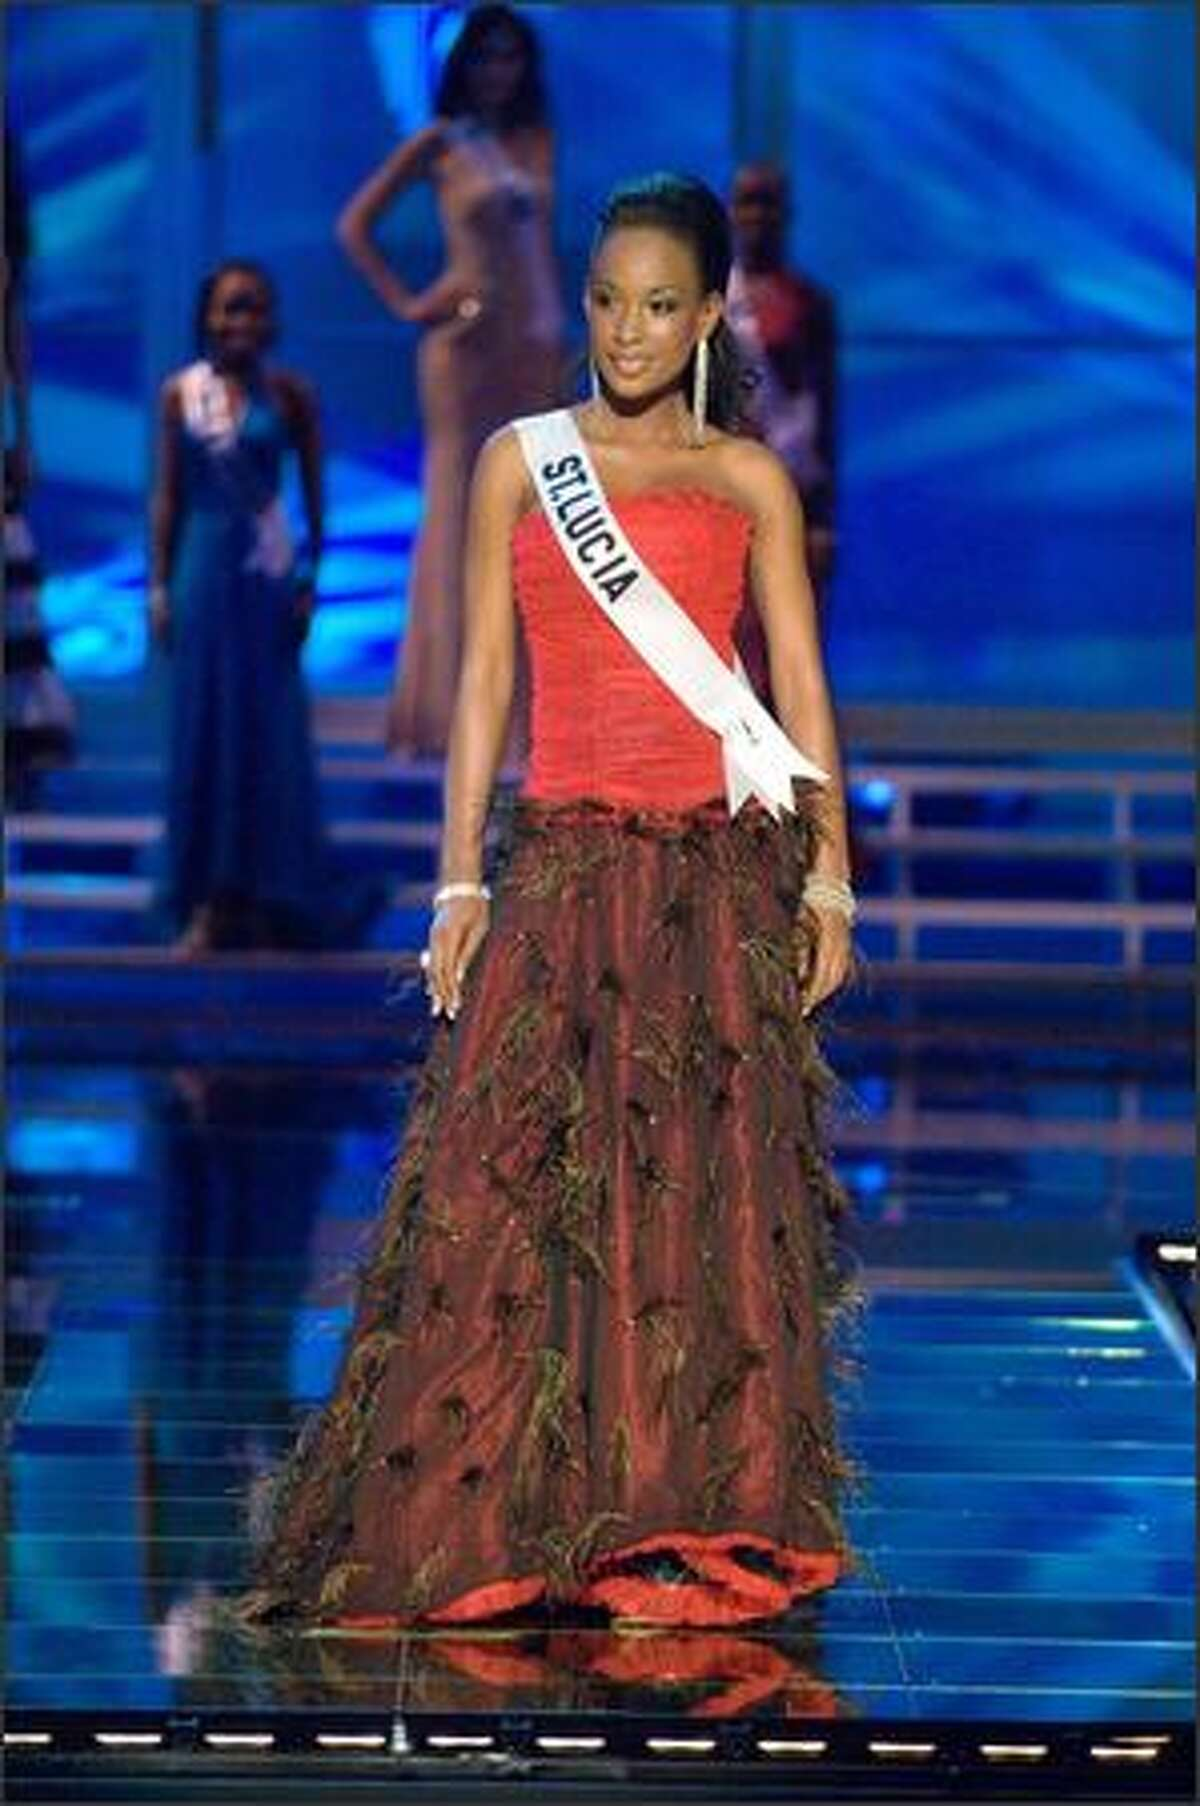 Yoanna Henry, Miss St. Lucia 2007, competes in an evening gown of her choice during the 2007 Miss Universe Presentation Show at Auditorio Nacional in Mexico City on May 23. During the Presentation Show, each is judged by a preliminary panel of judges in individual interview, swimsuit and evening gown categories. The scores will be tallied and the top 15 contestants will be announced during the broadcast of the finals on May 28 (9 p.m. Pacific, tape-delayed).